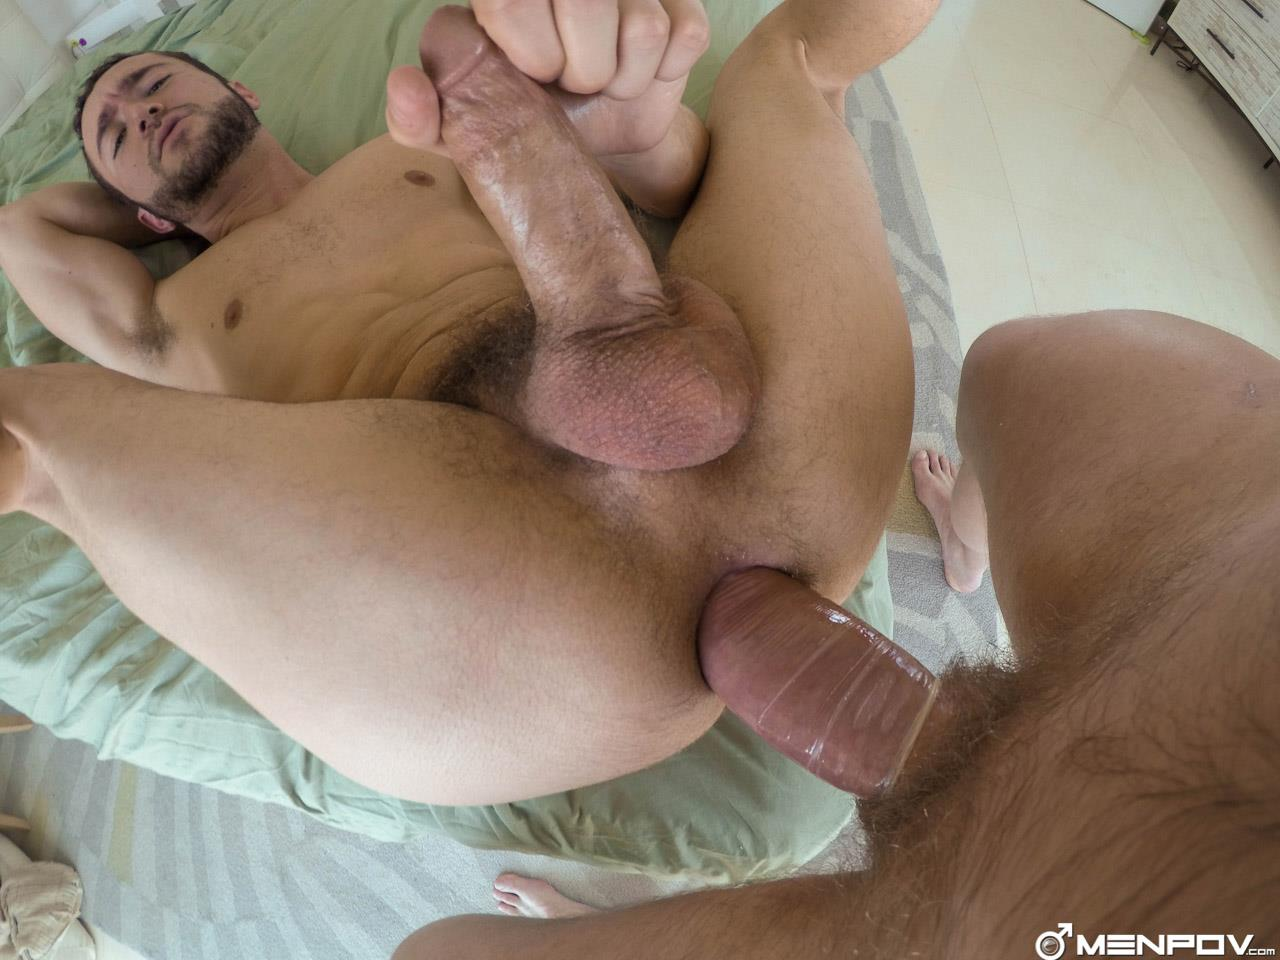 MenPOV Colt Rivers and Adam Herst Daddy Fucking His Boy Toy With A Thick Cock Amateur Gay Porn 22 Muscular Daddy Fucking His Boy Toy With His Thick Hard Cock